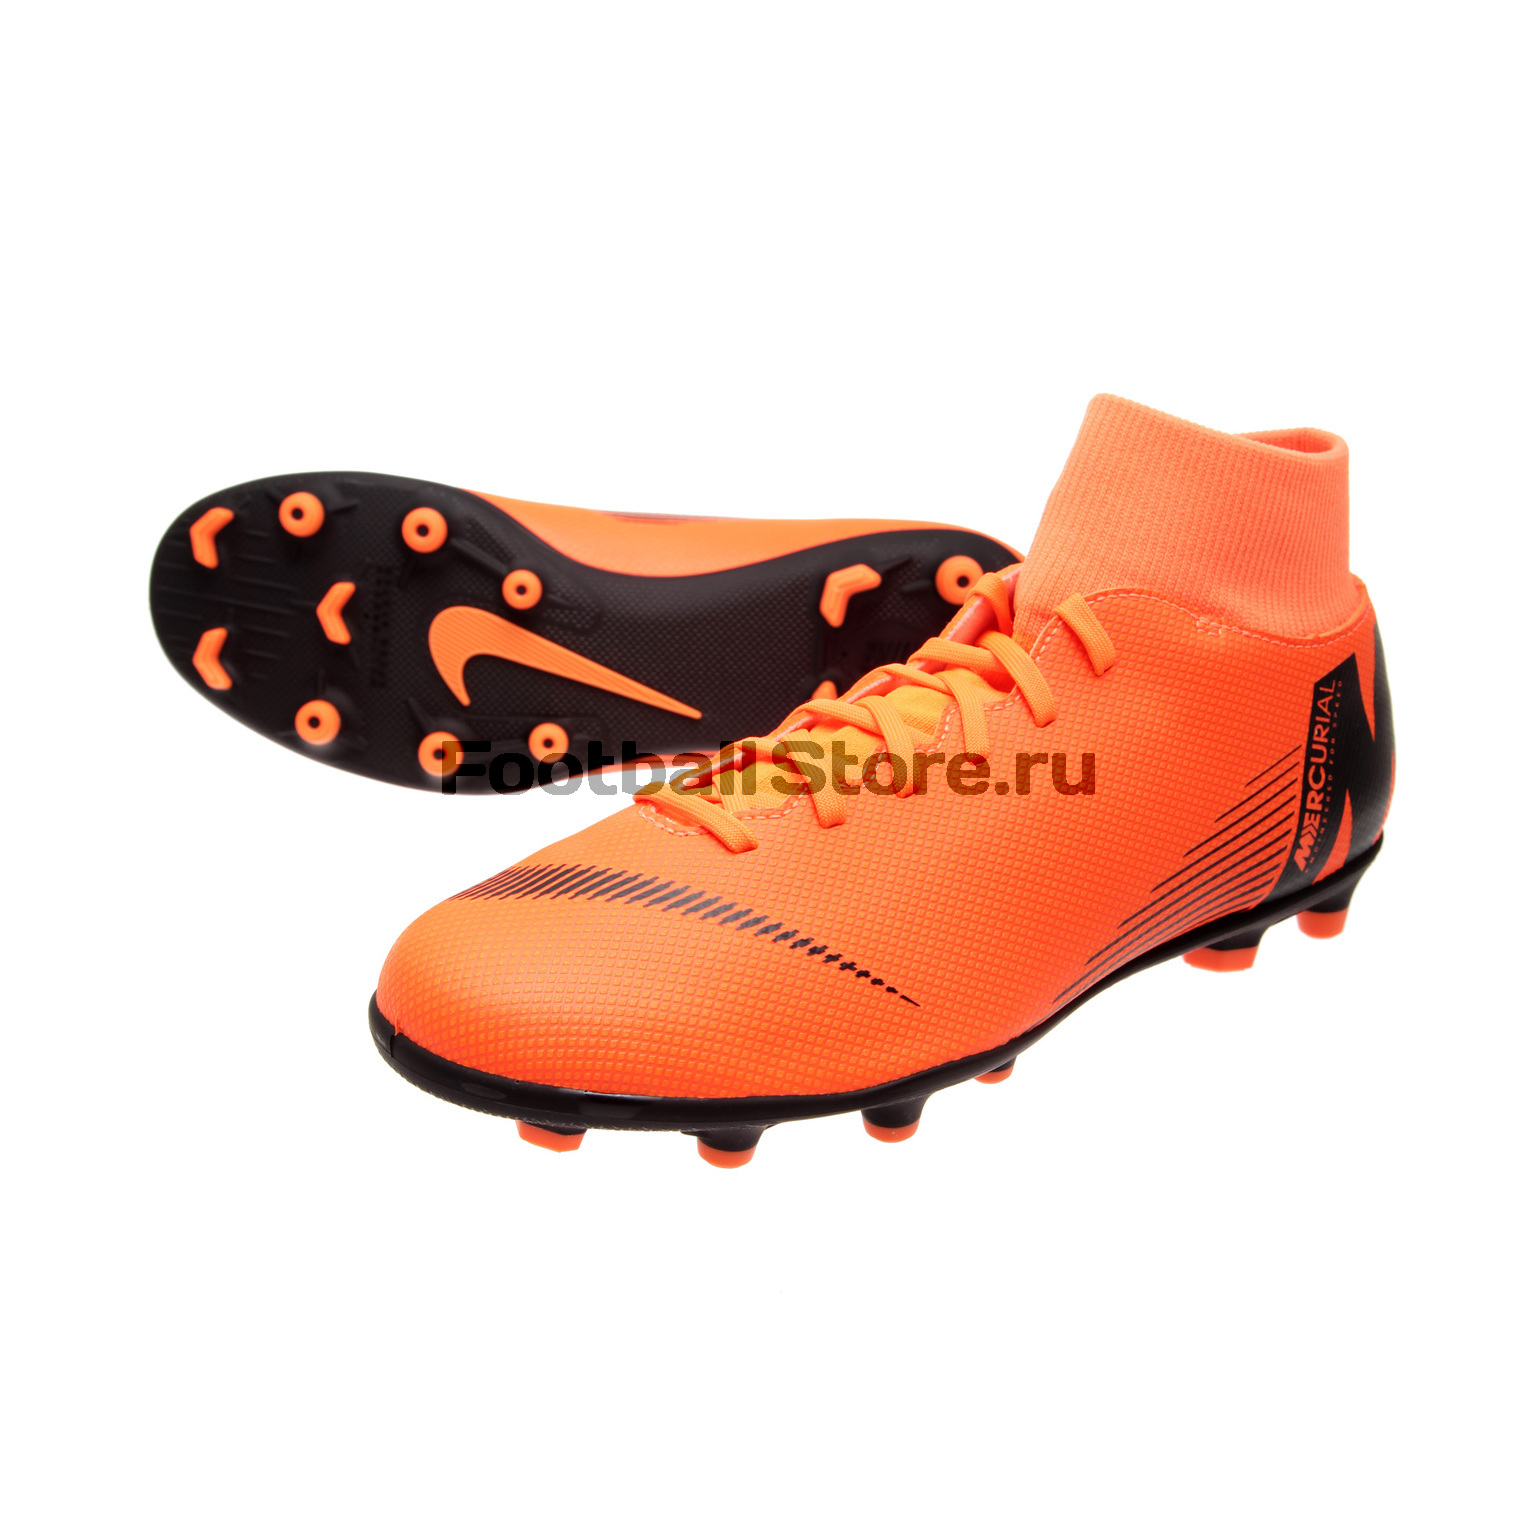 Бутсы Nike SuperFly 6 Club FG/MG AH7363-810 бутсы nike superfly 6 elite fg ah7365 060